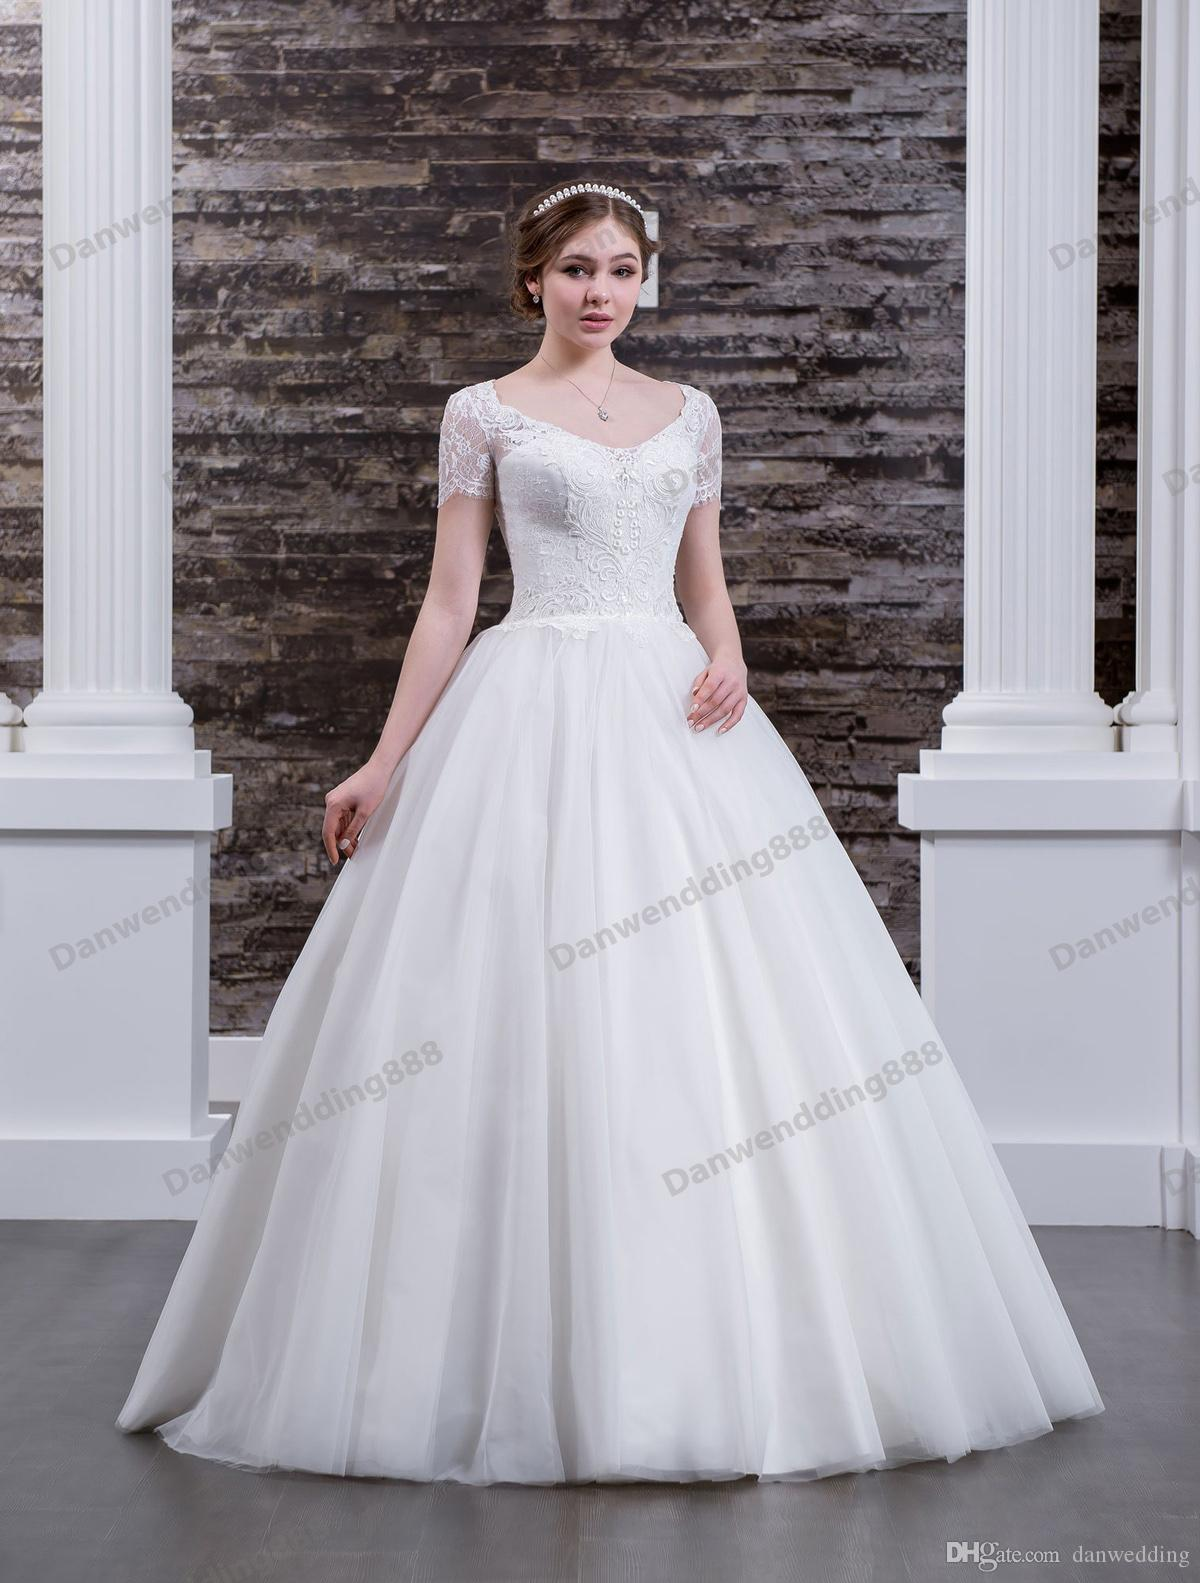 Charming White Tulle/Lace Scoop Applique A-Line Wedding Dresses Bridal Pageant Dresses Wedding Attire Dresses Custom Size 2-16 ZW608069